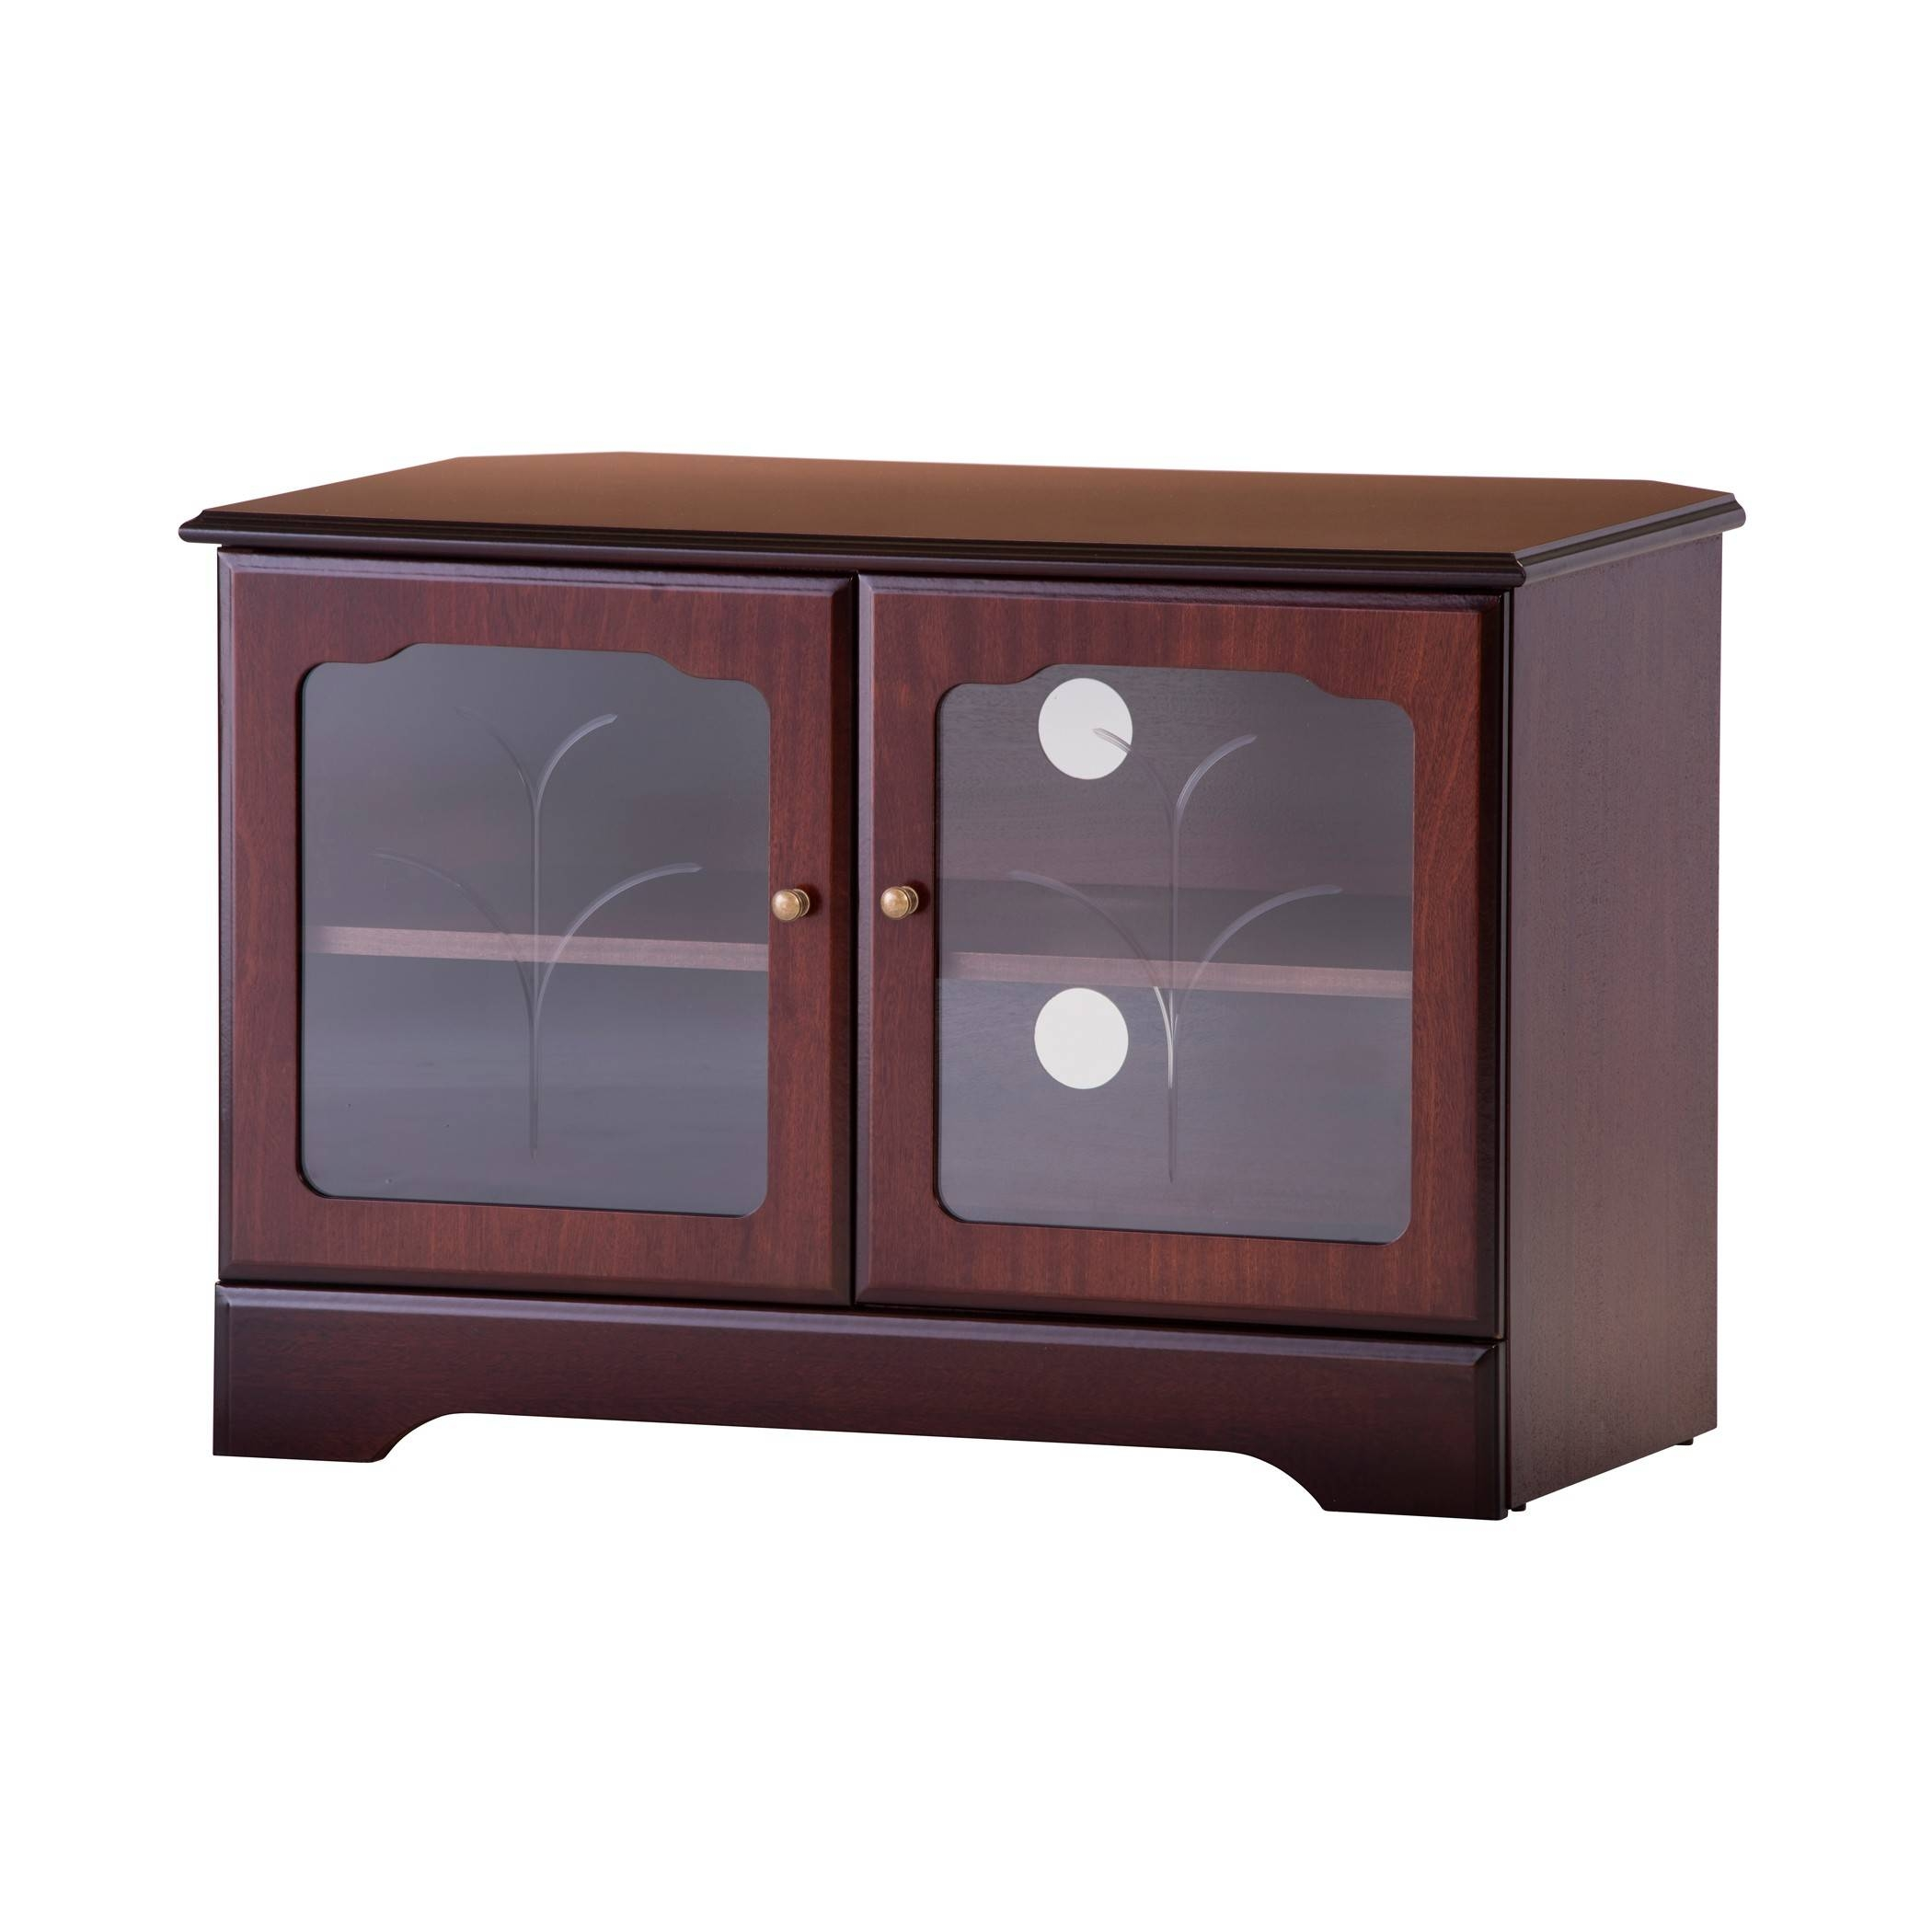 Tv Stands - Living Room | Gola Furniture Uk intended for Mahogany Tv Cabinets (Image 14 of 15)